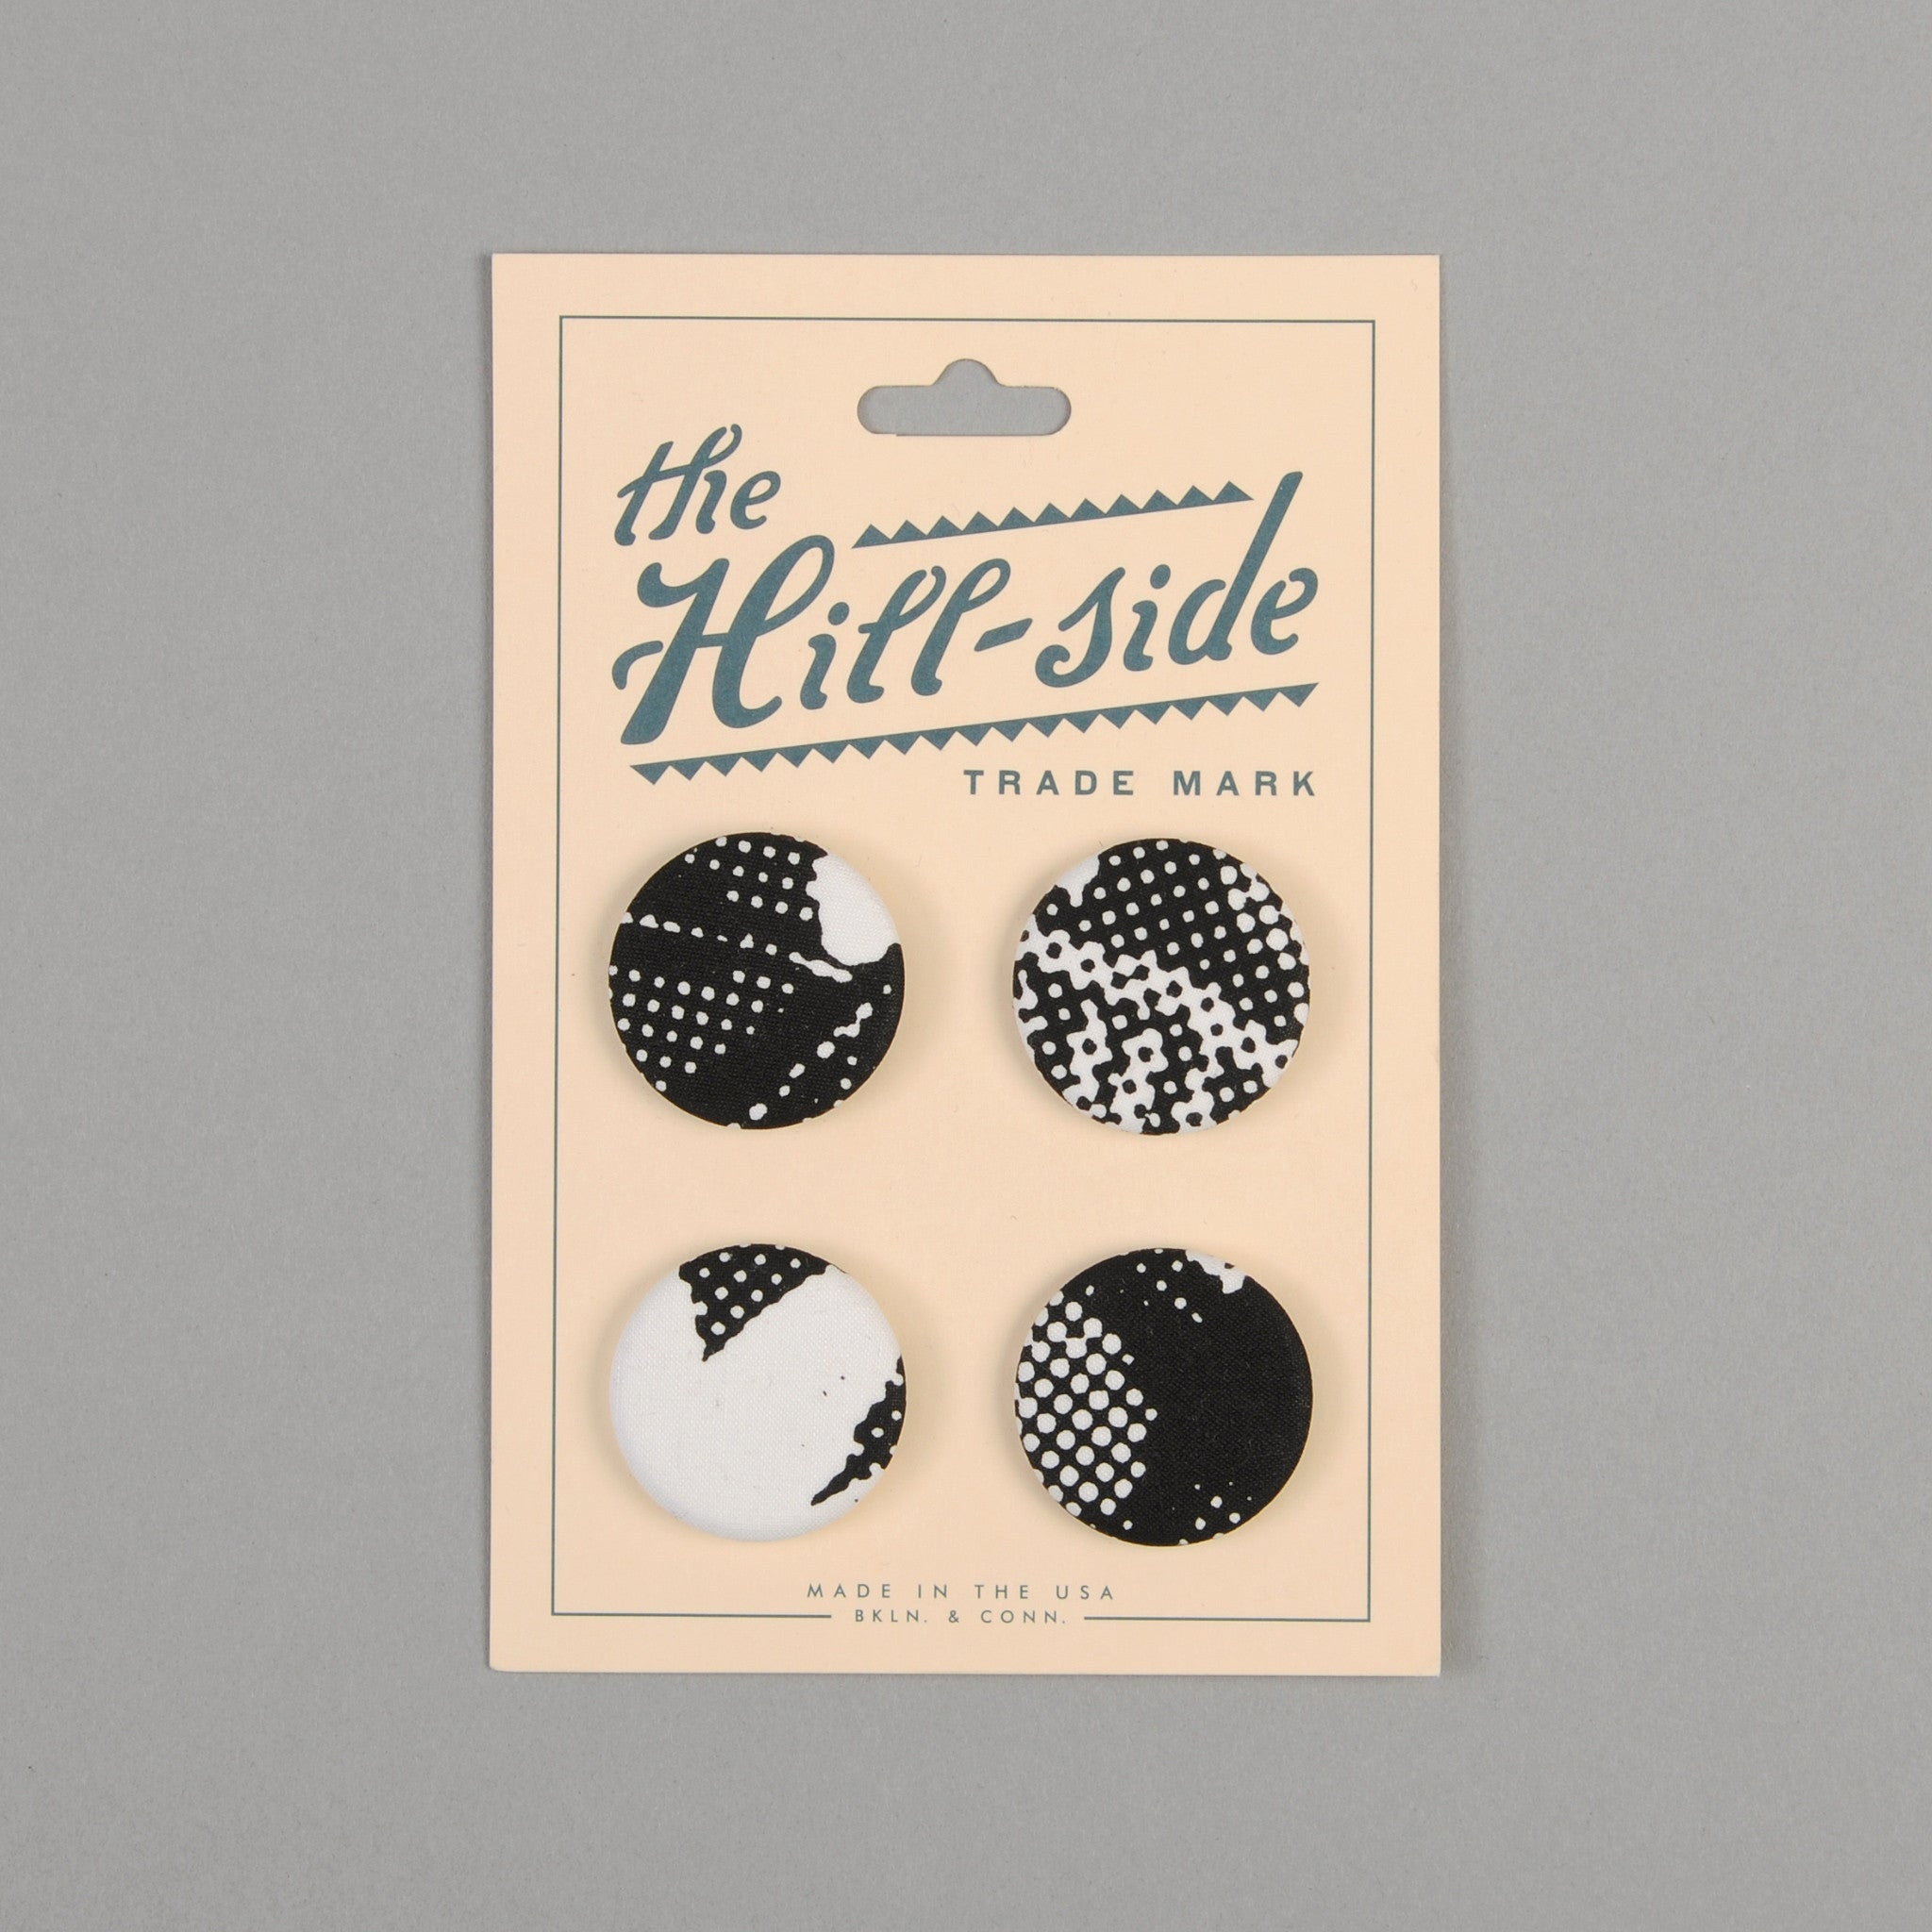 The Hill-Side - Pin-Back Buttons, Big Halftone Floral Print - PB1-20